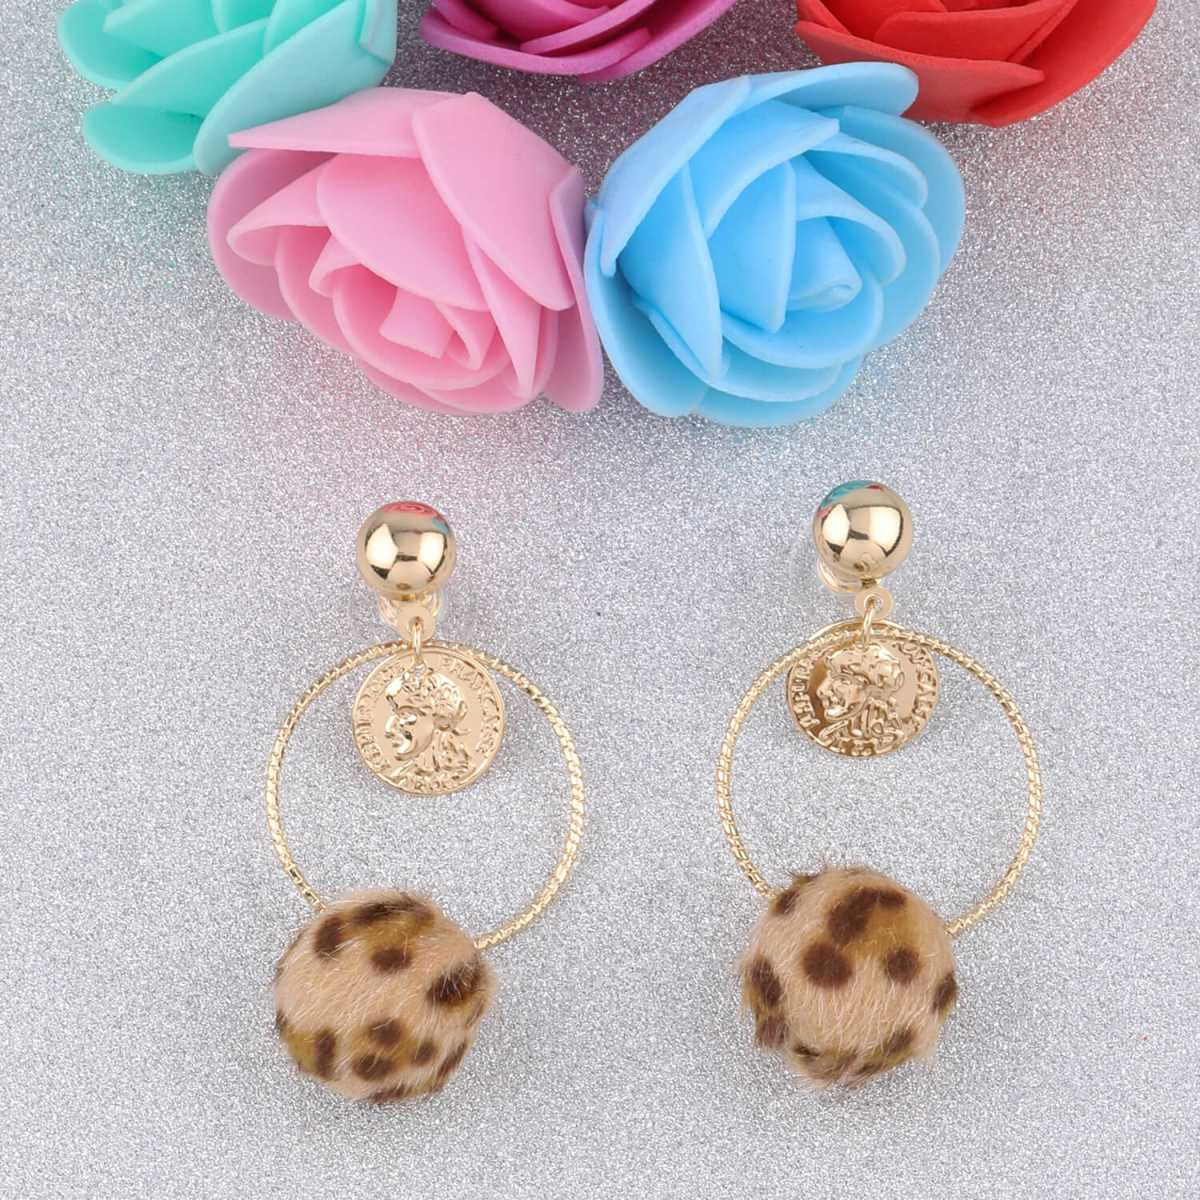 SILVER SHINE Attractive Gold Plated Stylish Party Wear Dangle Earring For Women Girl